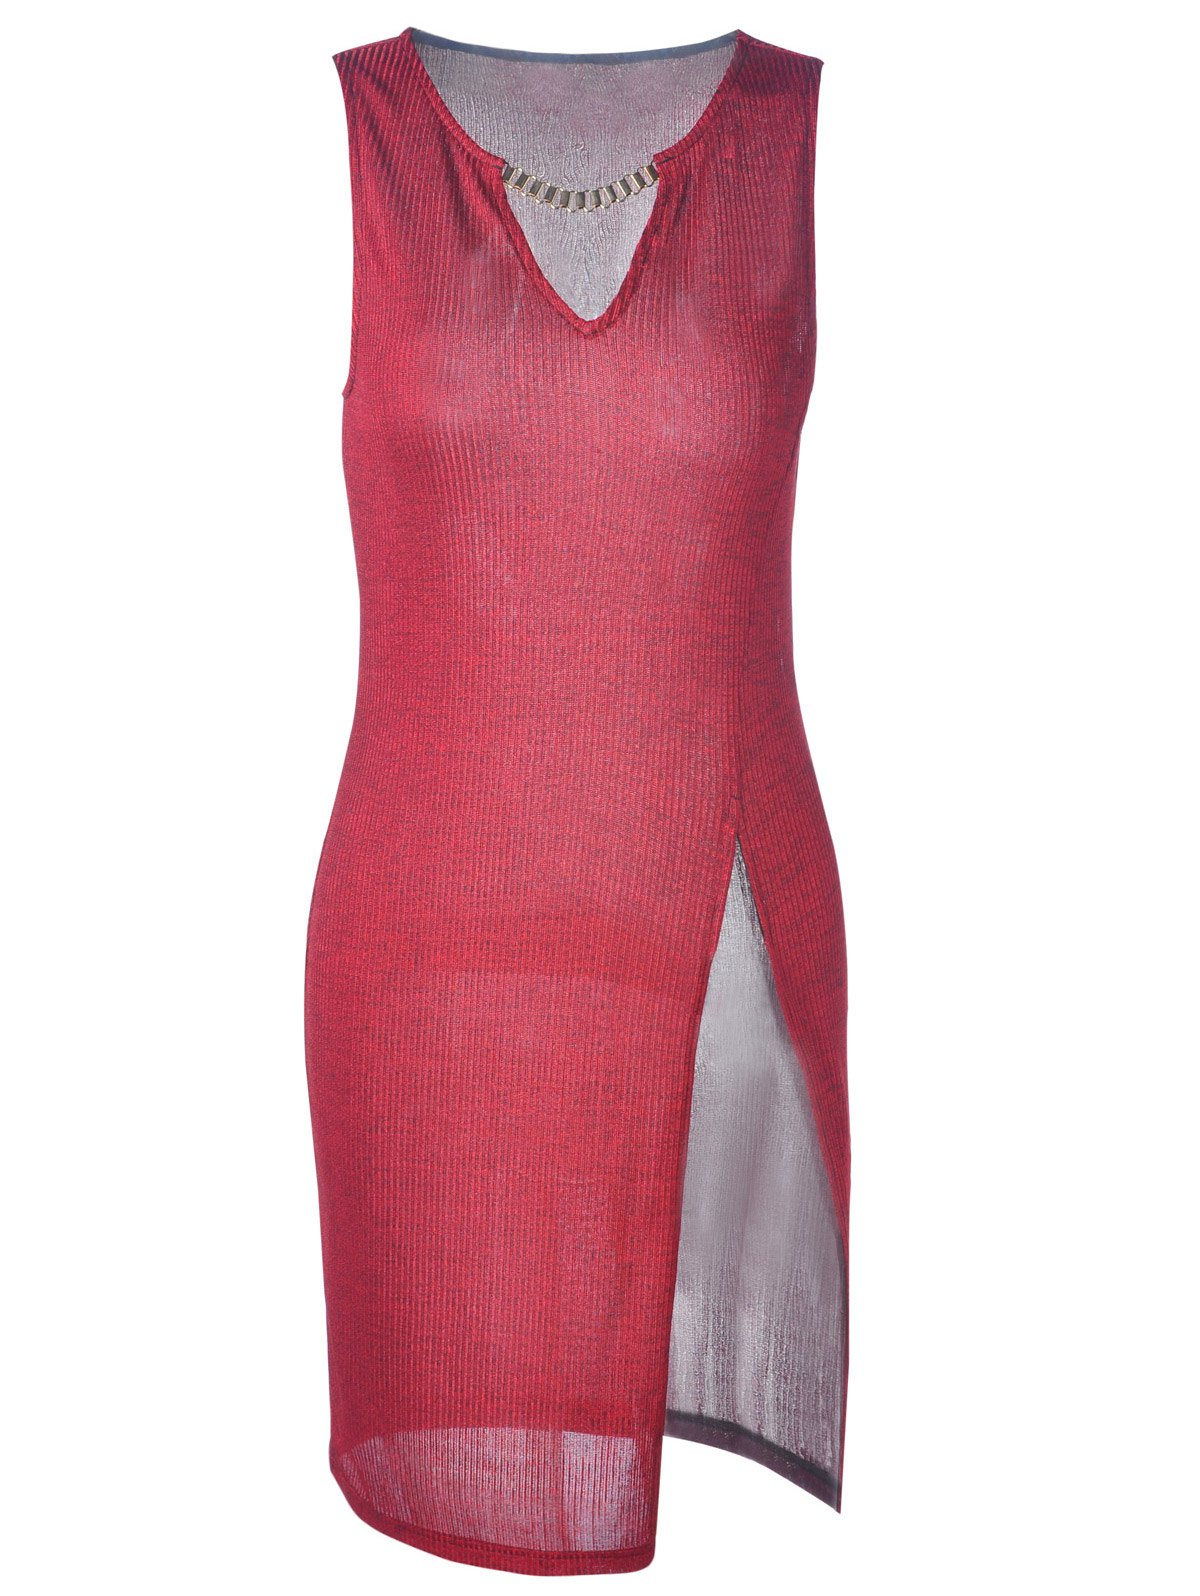 Fashionable Fitted Slit V-Neck ini Dress For Women - WINE RED L